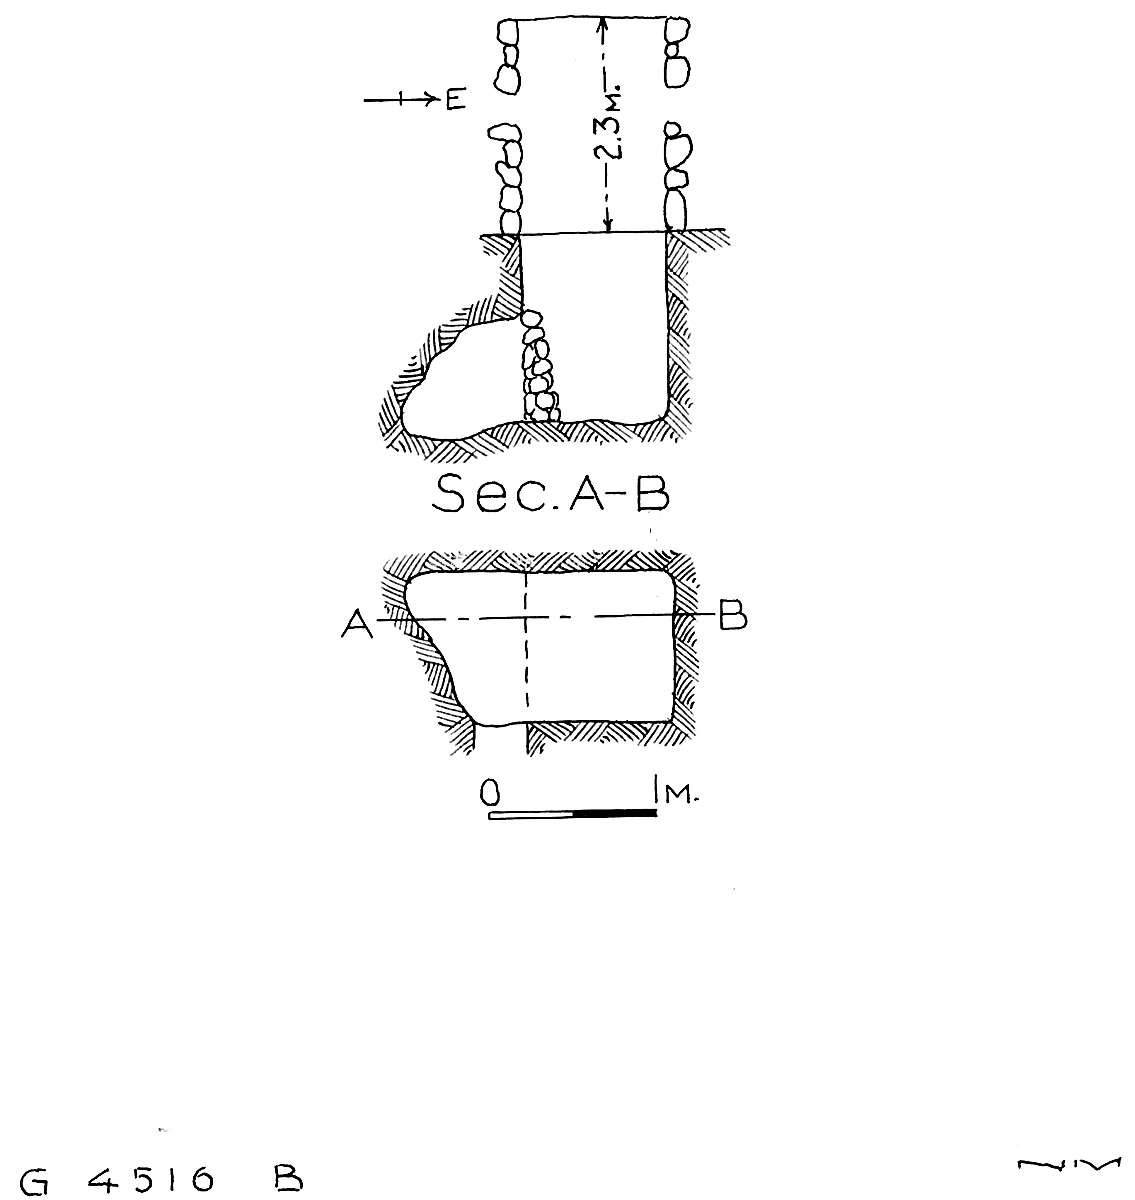 Maps and plans: G 4516, Shaft B